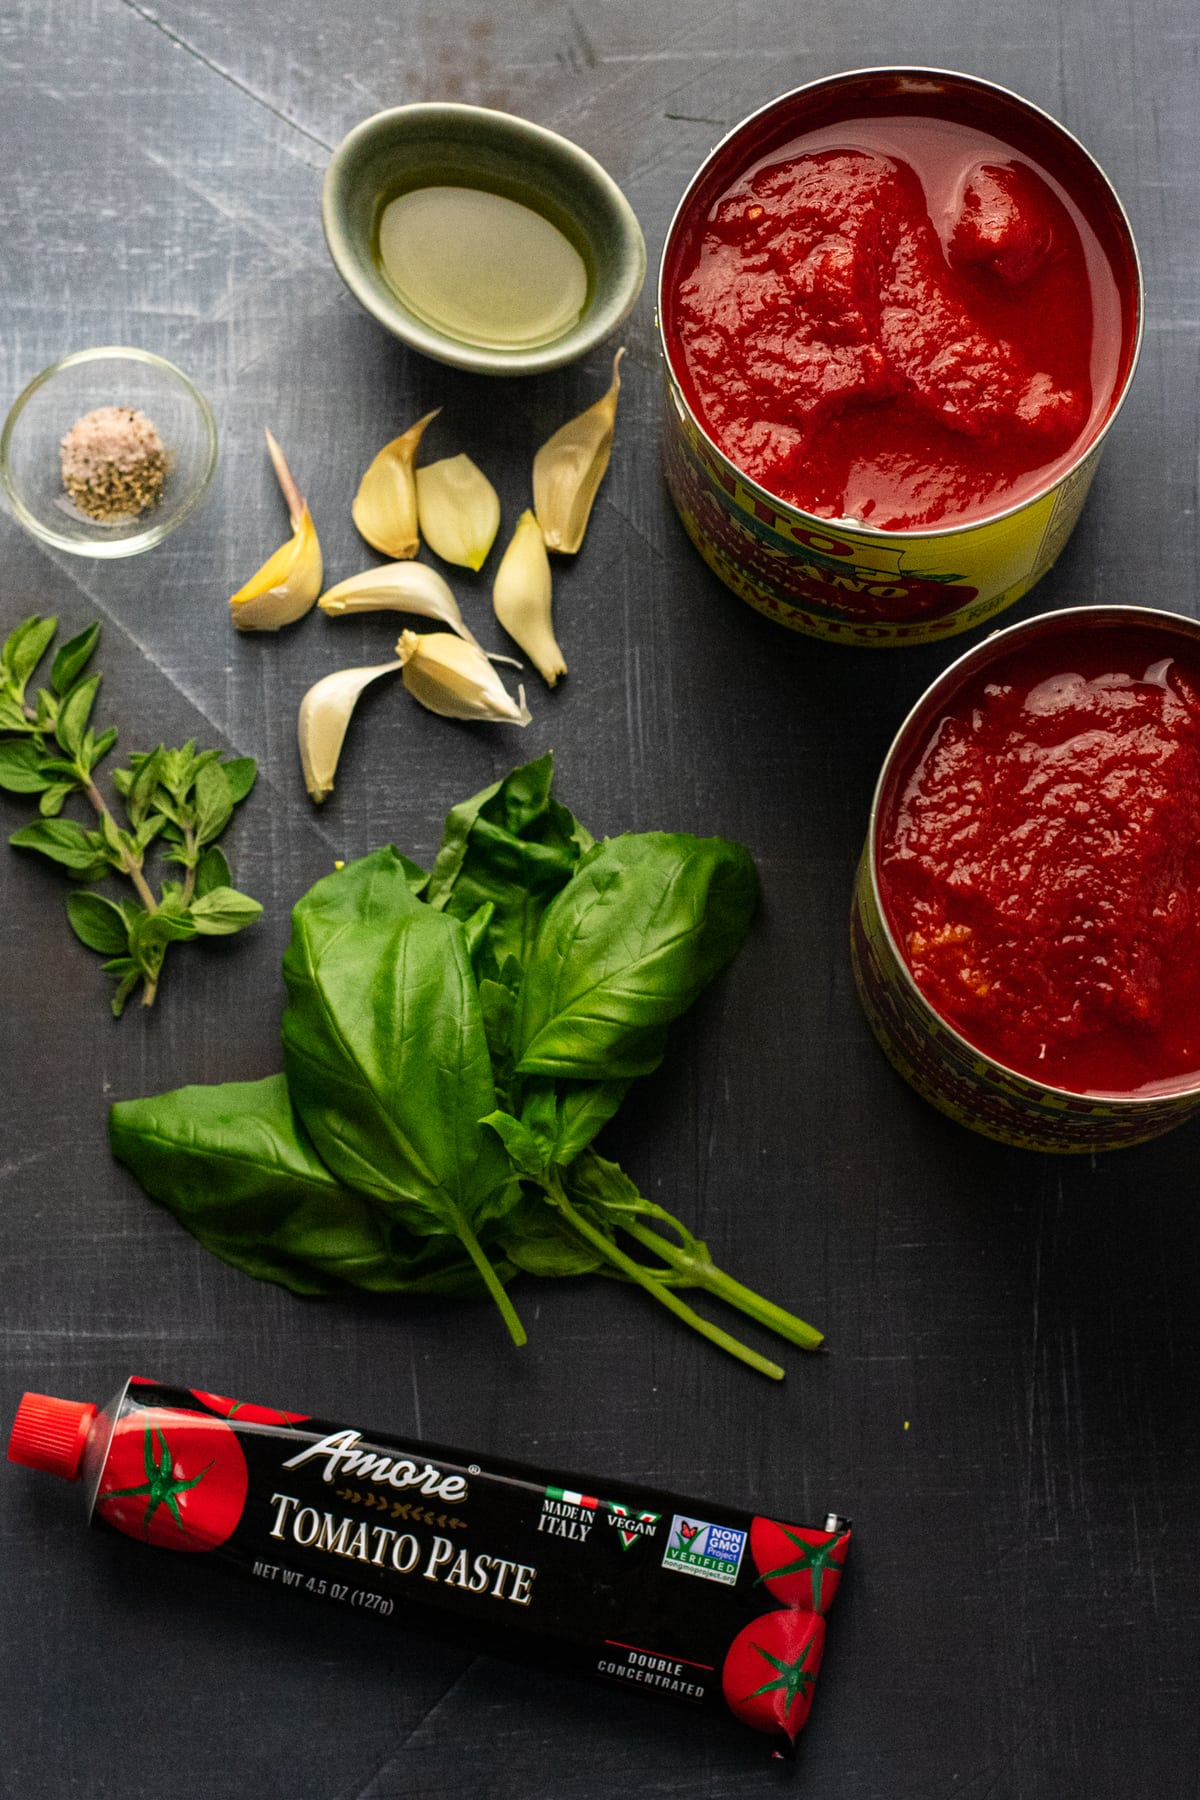 ingredients for tomato sauce arranged on gray background.